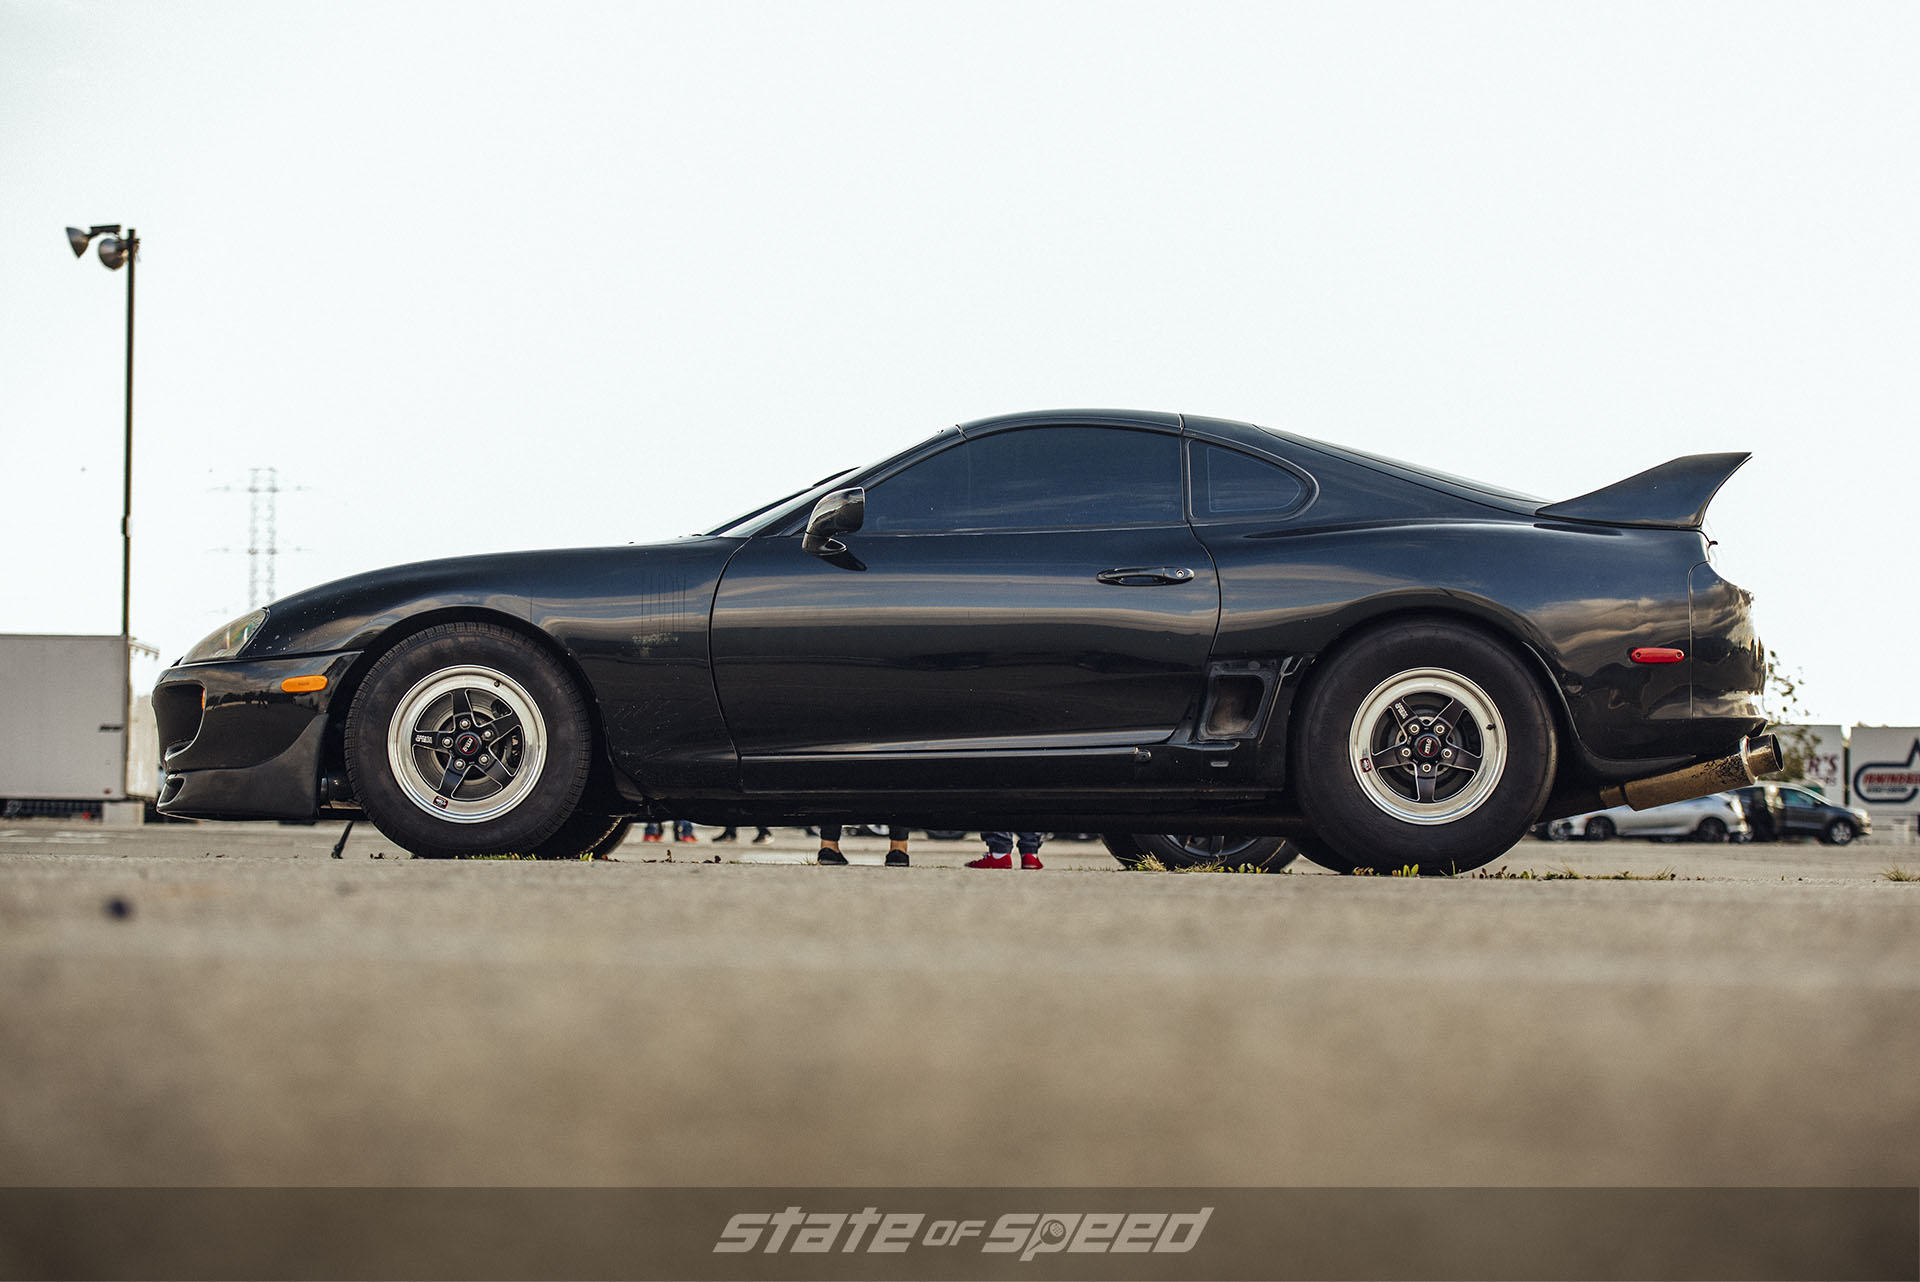 Toyota Supra at the track